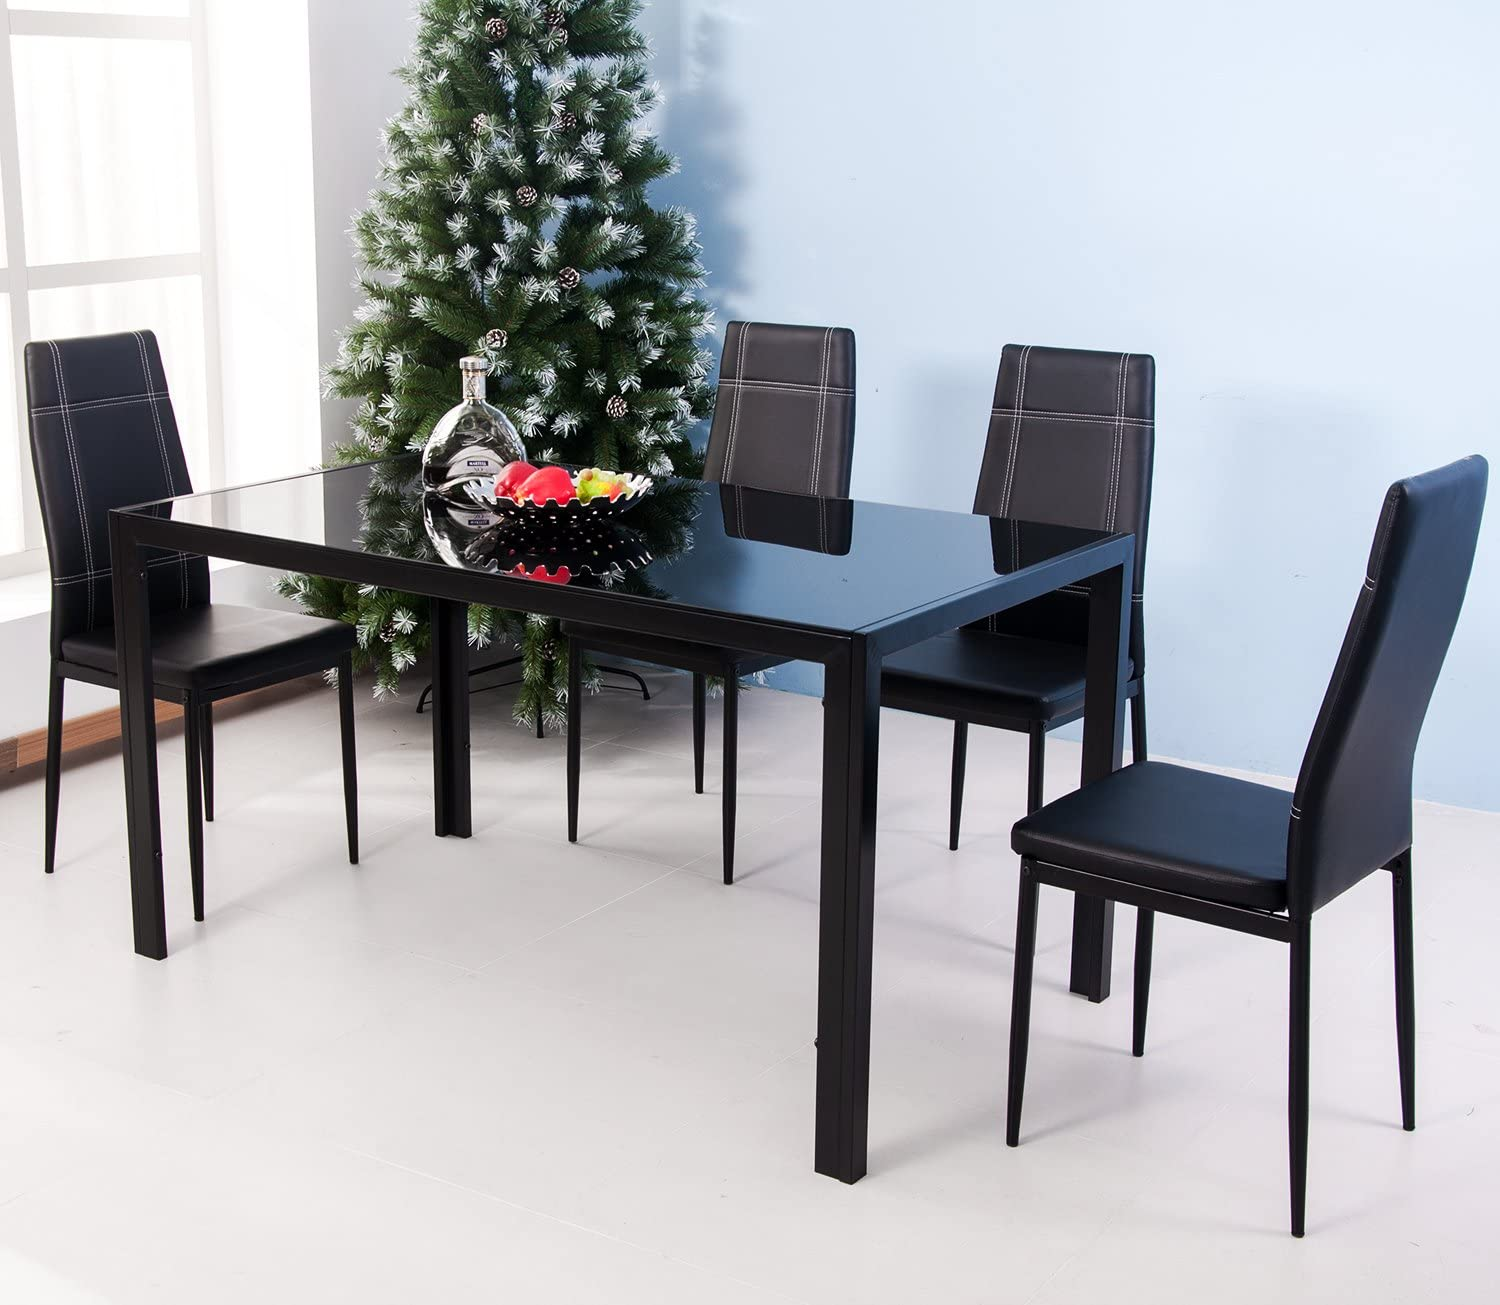 Modern Metal Kitchen Table with High Black Chairs Home Furniture ...